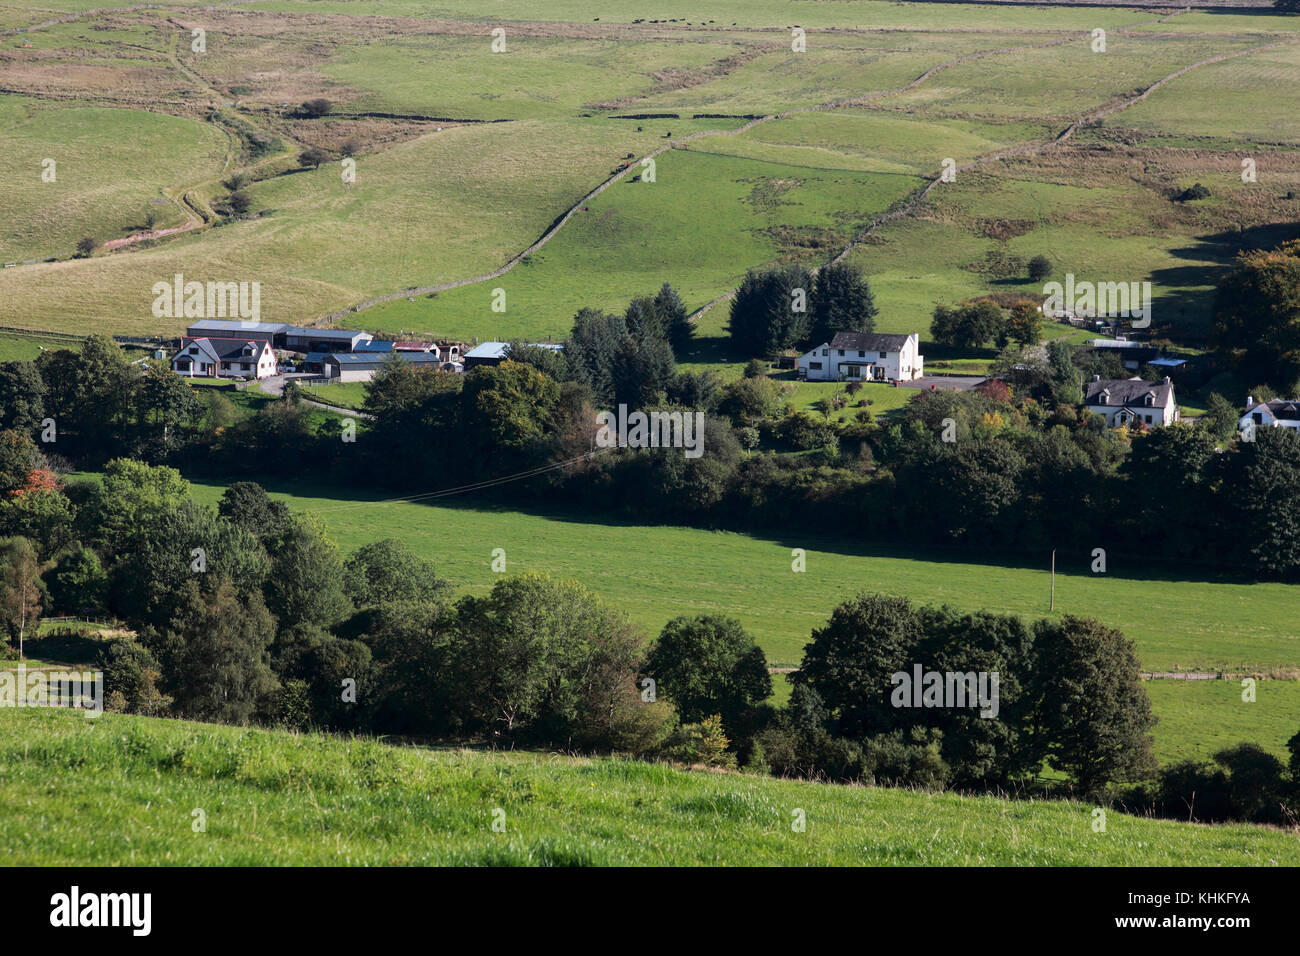 The Annandale valley in the Moffat hills of the Scottish Borders, just north of Moffat - Stock Image